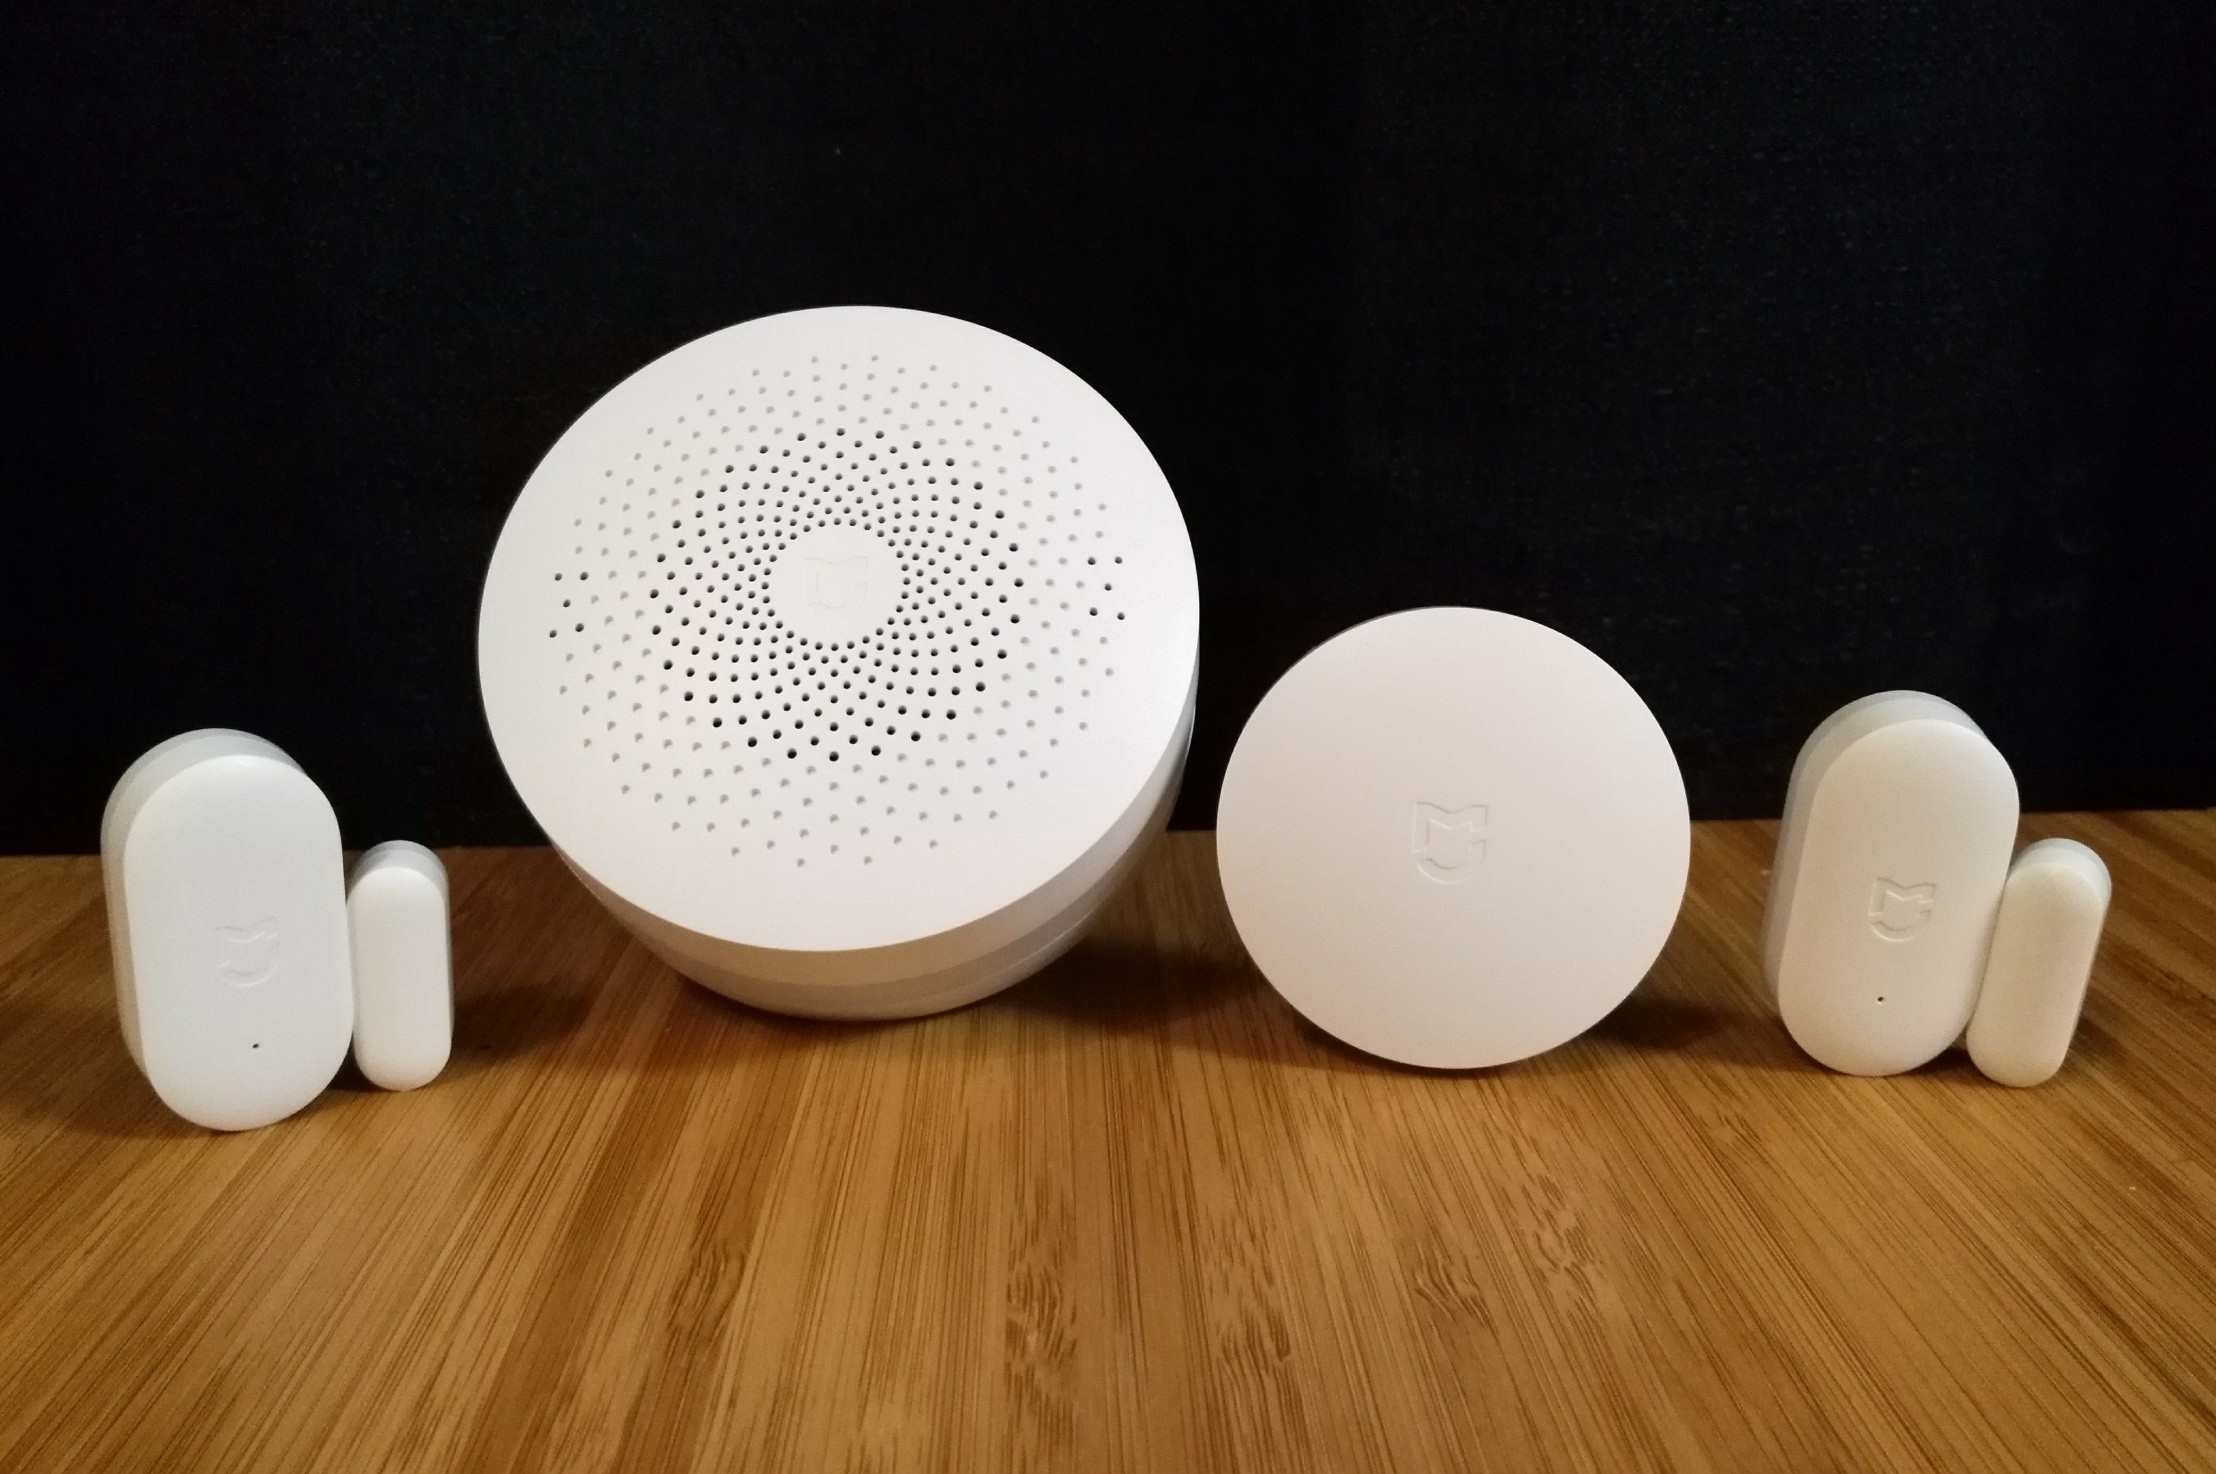 Xiaomi fensterkontakt xiaomi smart home kit wlan schalter smart